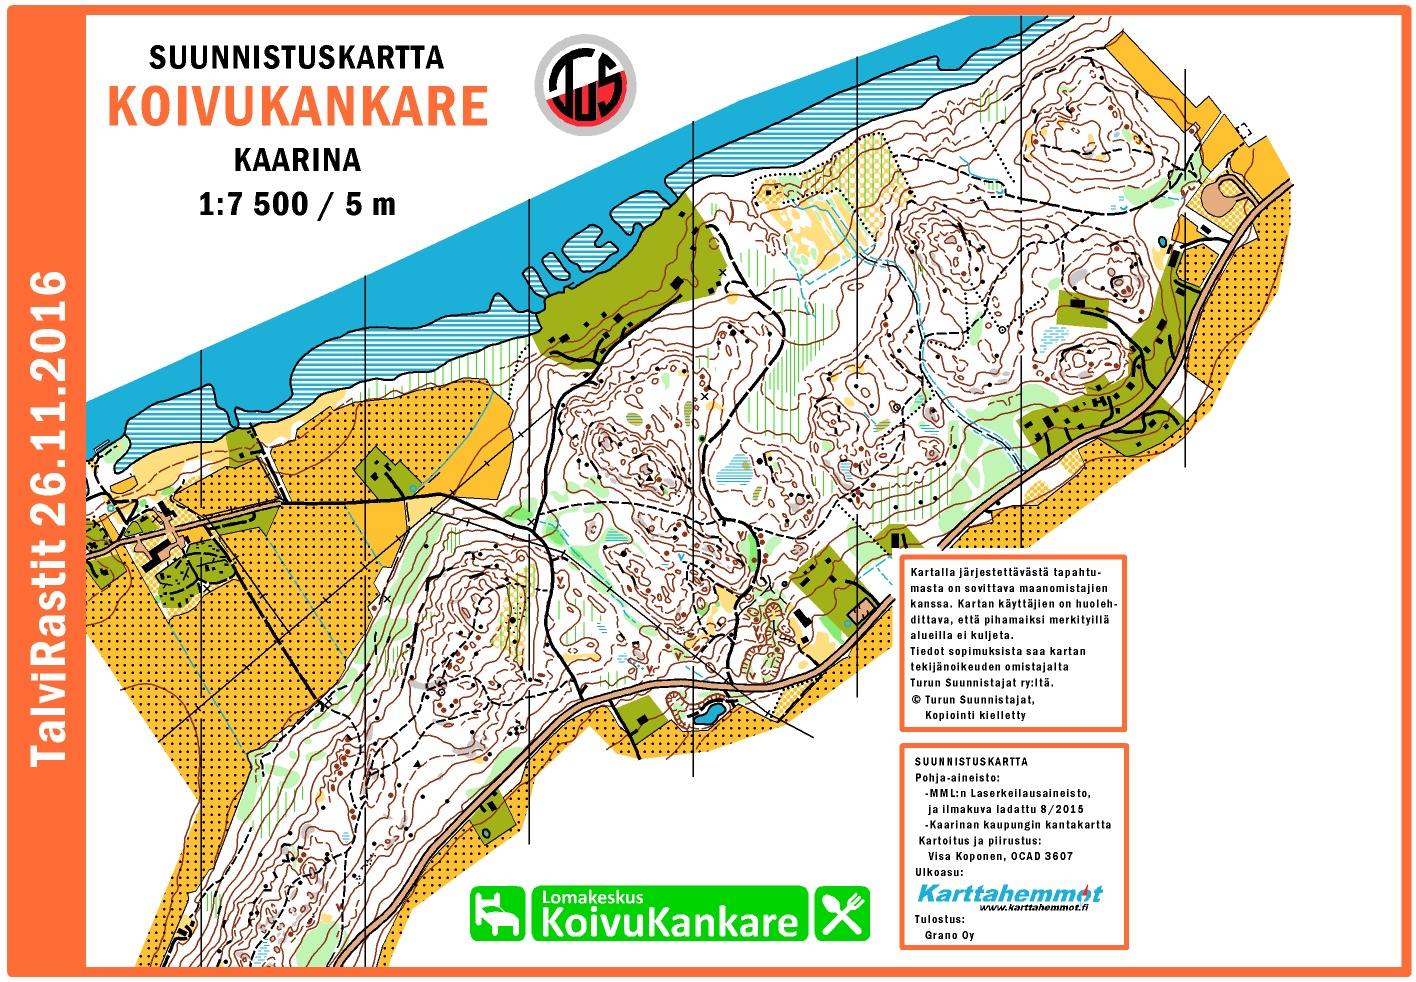 Talvirastit 26 11 2016 November 26th 2016 Orienteering Map